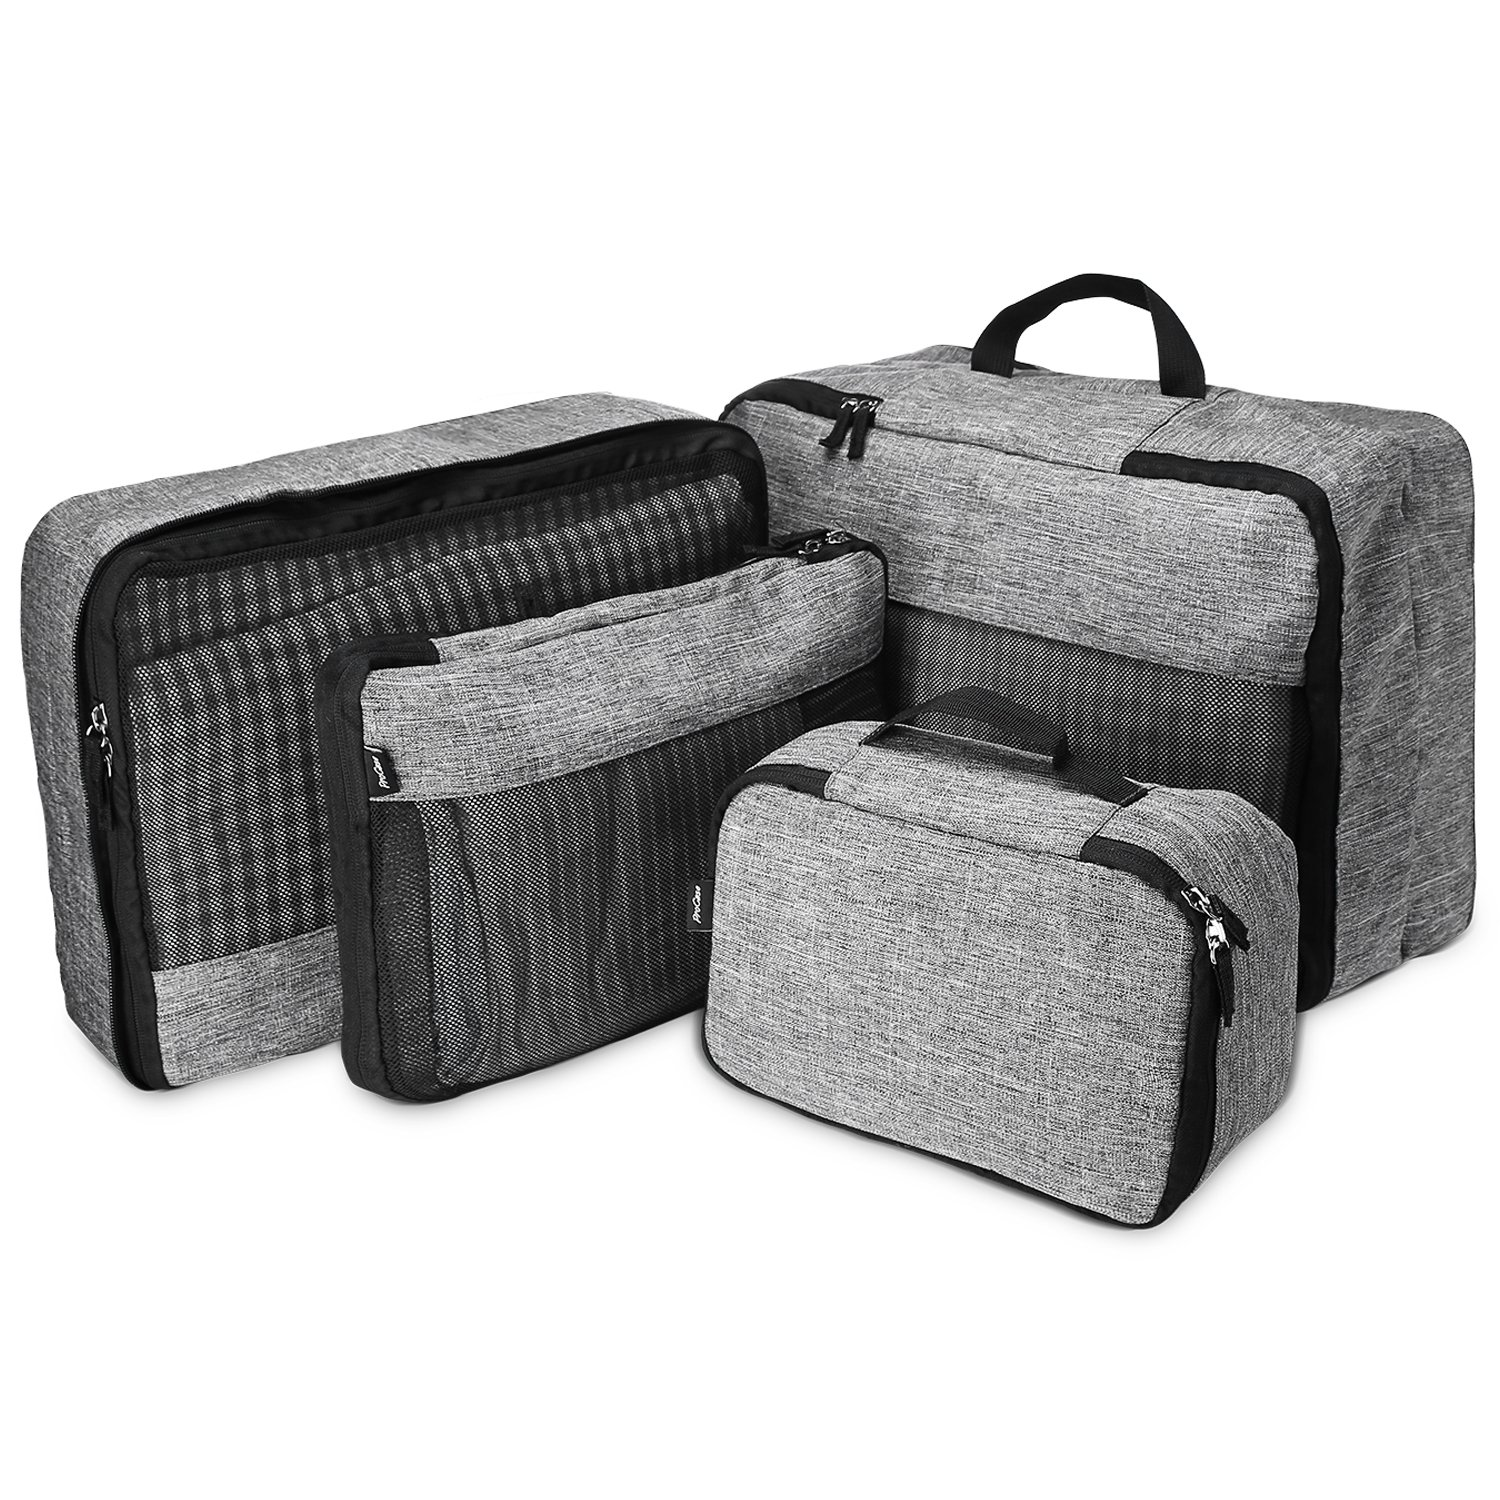 4 Set Packing Cubes, Compression Travel Luggage Organizers with a Toiletry Bag